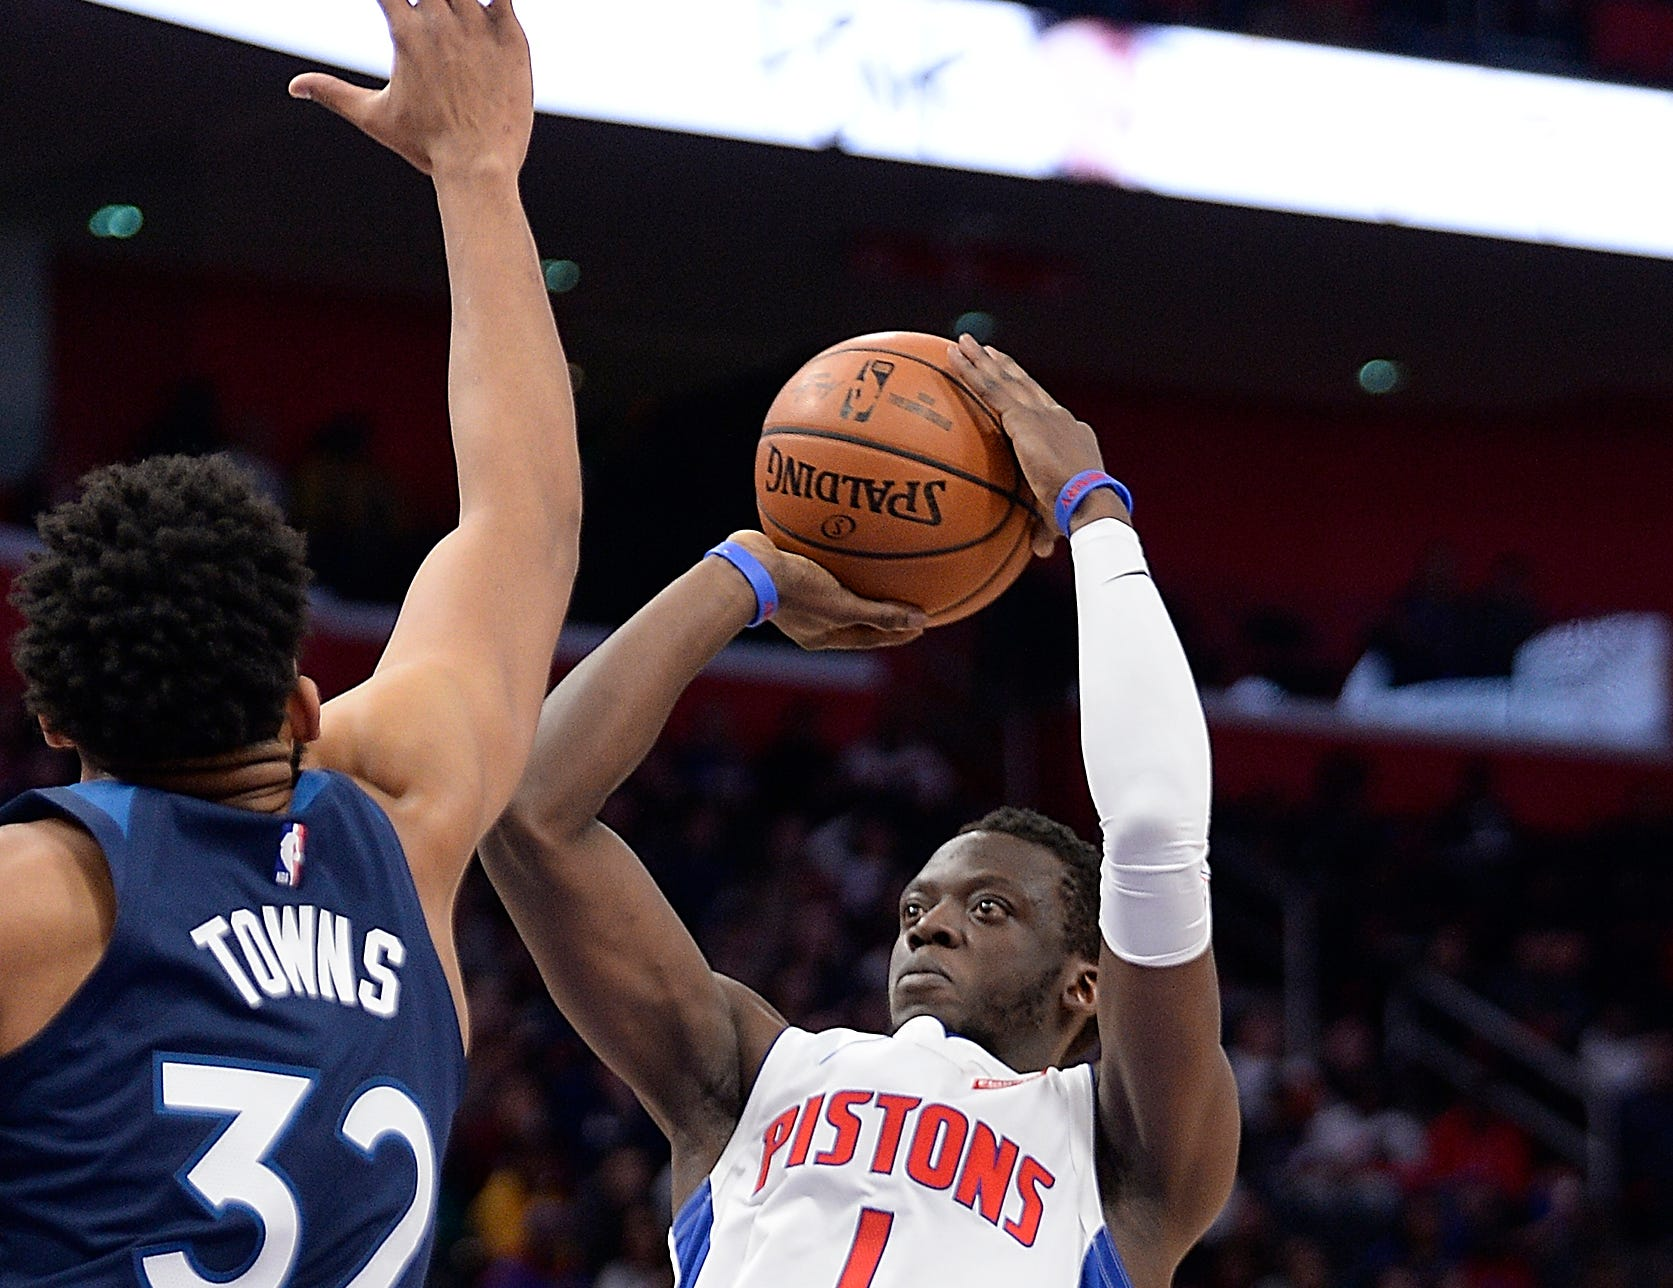 Pistons' Reggie Jackson shoots over Timberwolves' Karl-Anthony Towns in the second quarter.